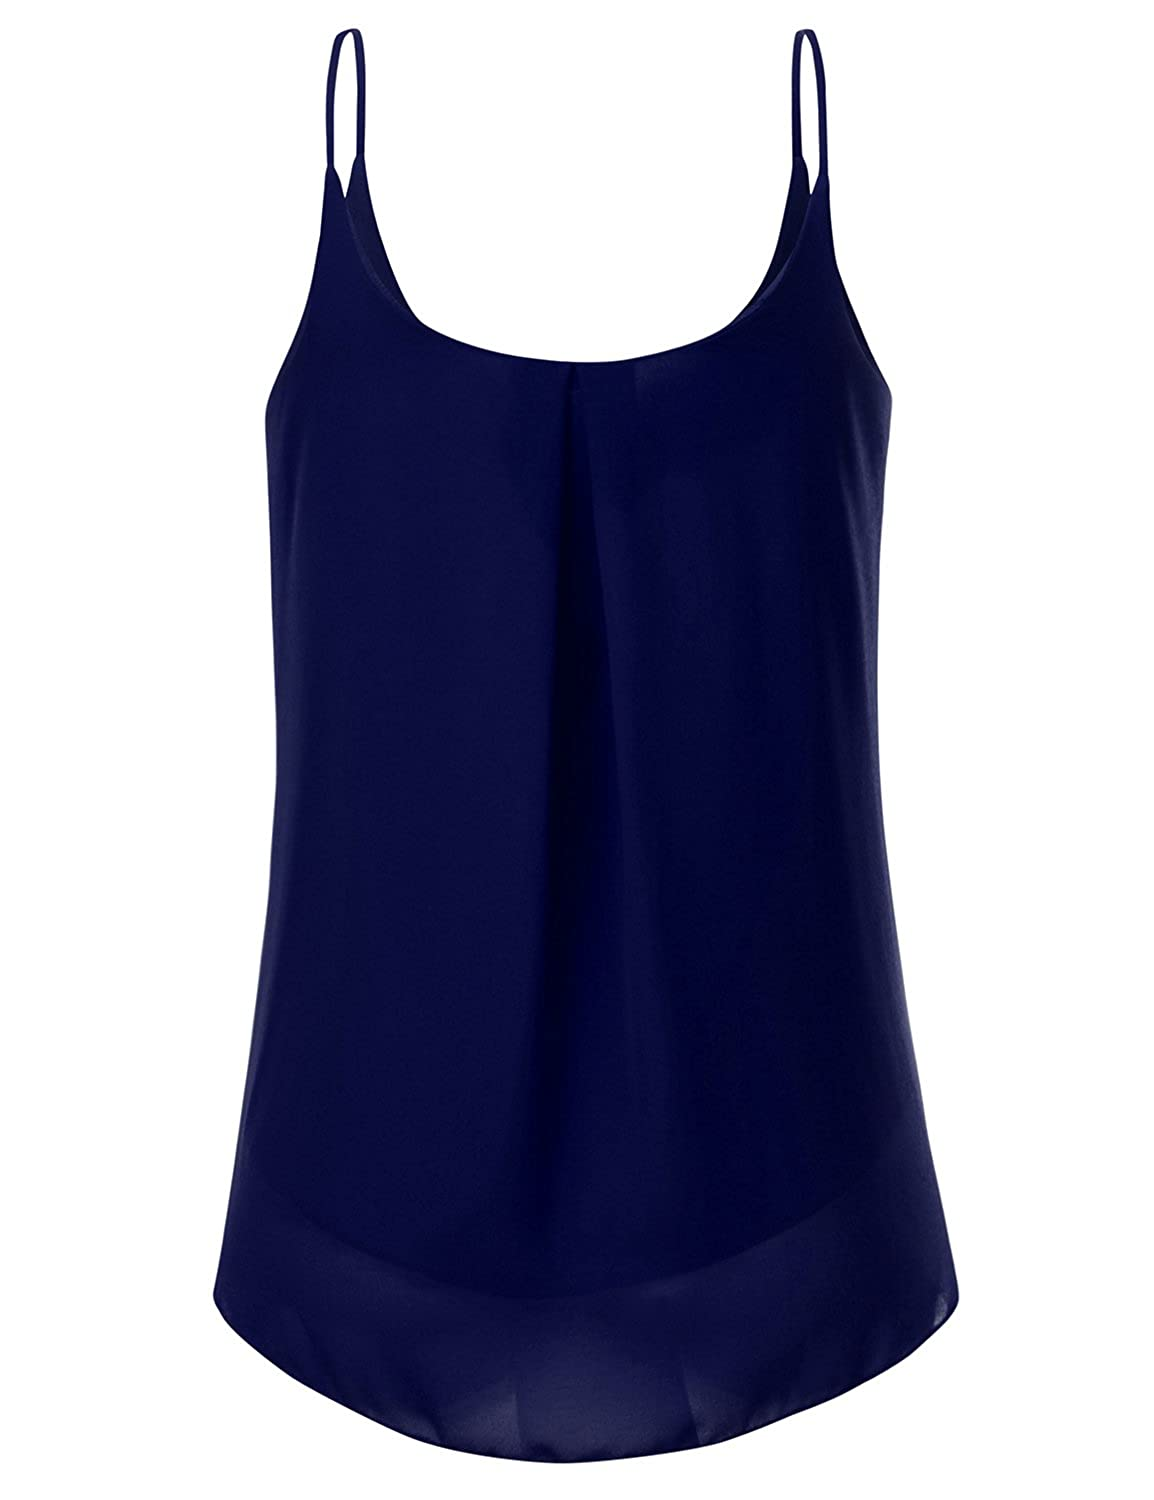 d251df40e97b8 JJ Perfection Women's Pleated Chiffon Layered Cami Tank Top at Amazon  Women's Clothing store: